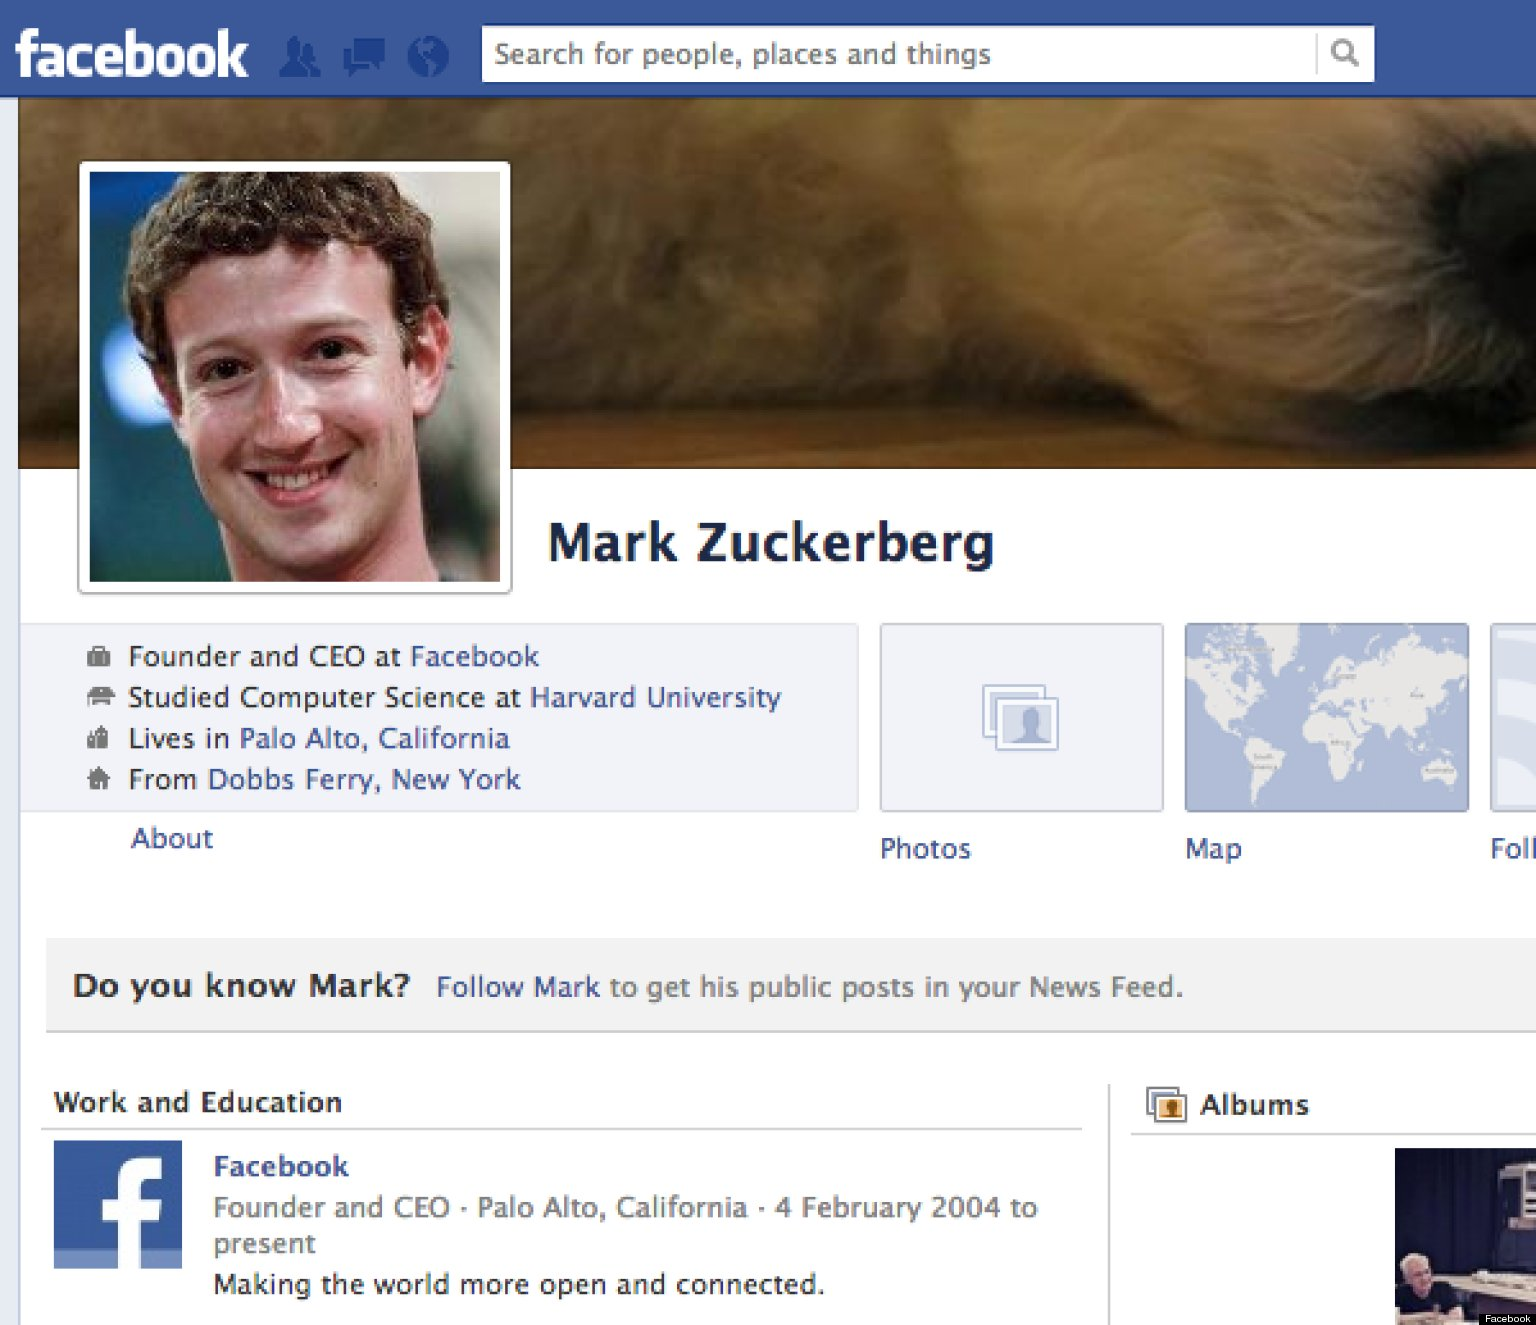 Facebook will charge you 100 to message mark zuckerberg the